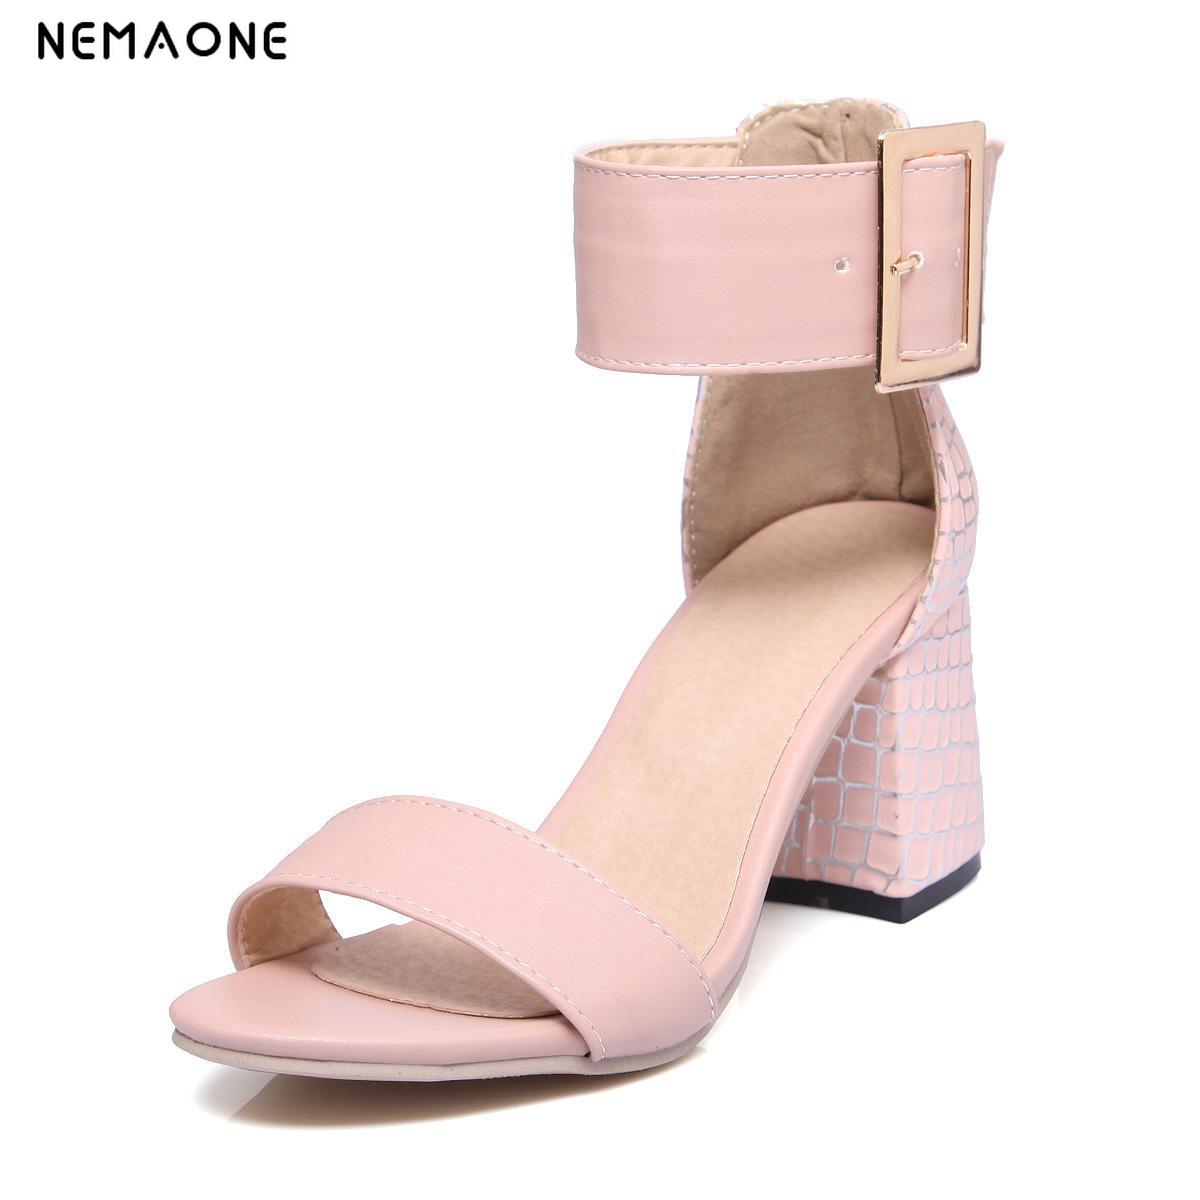 NEMAONE 2017 New elegant women shoes high heels sandals women summer shoes woman sexy ankle strap ladies shoes white pink blue nemaone new sexy high heels sandals